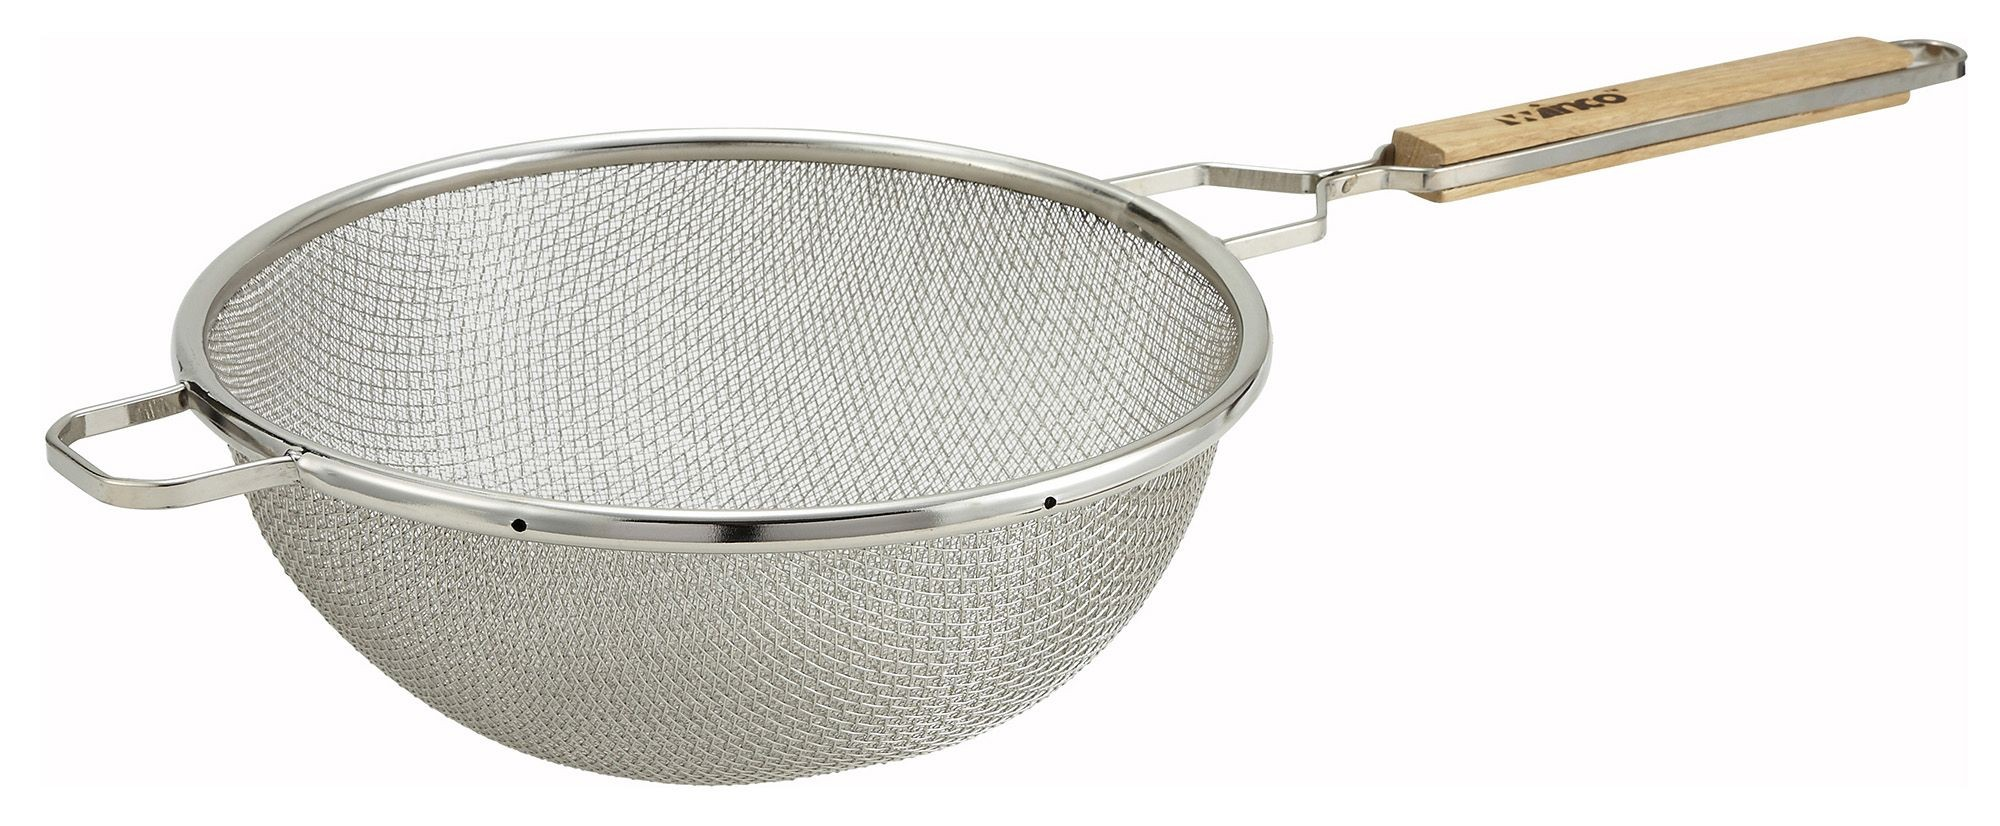 Winco MST-10D Double Mesh Medium Strainer with Wood Handle 10-1/2""